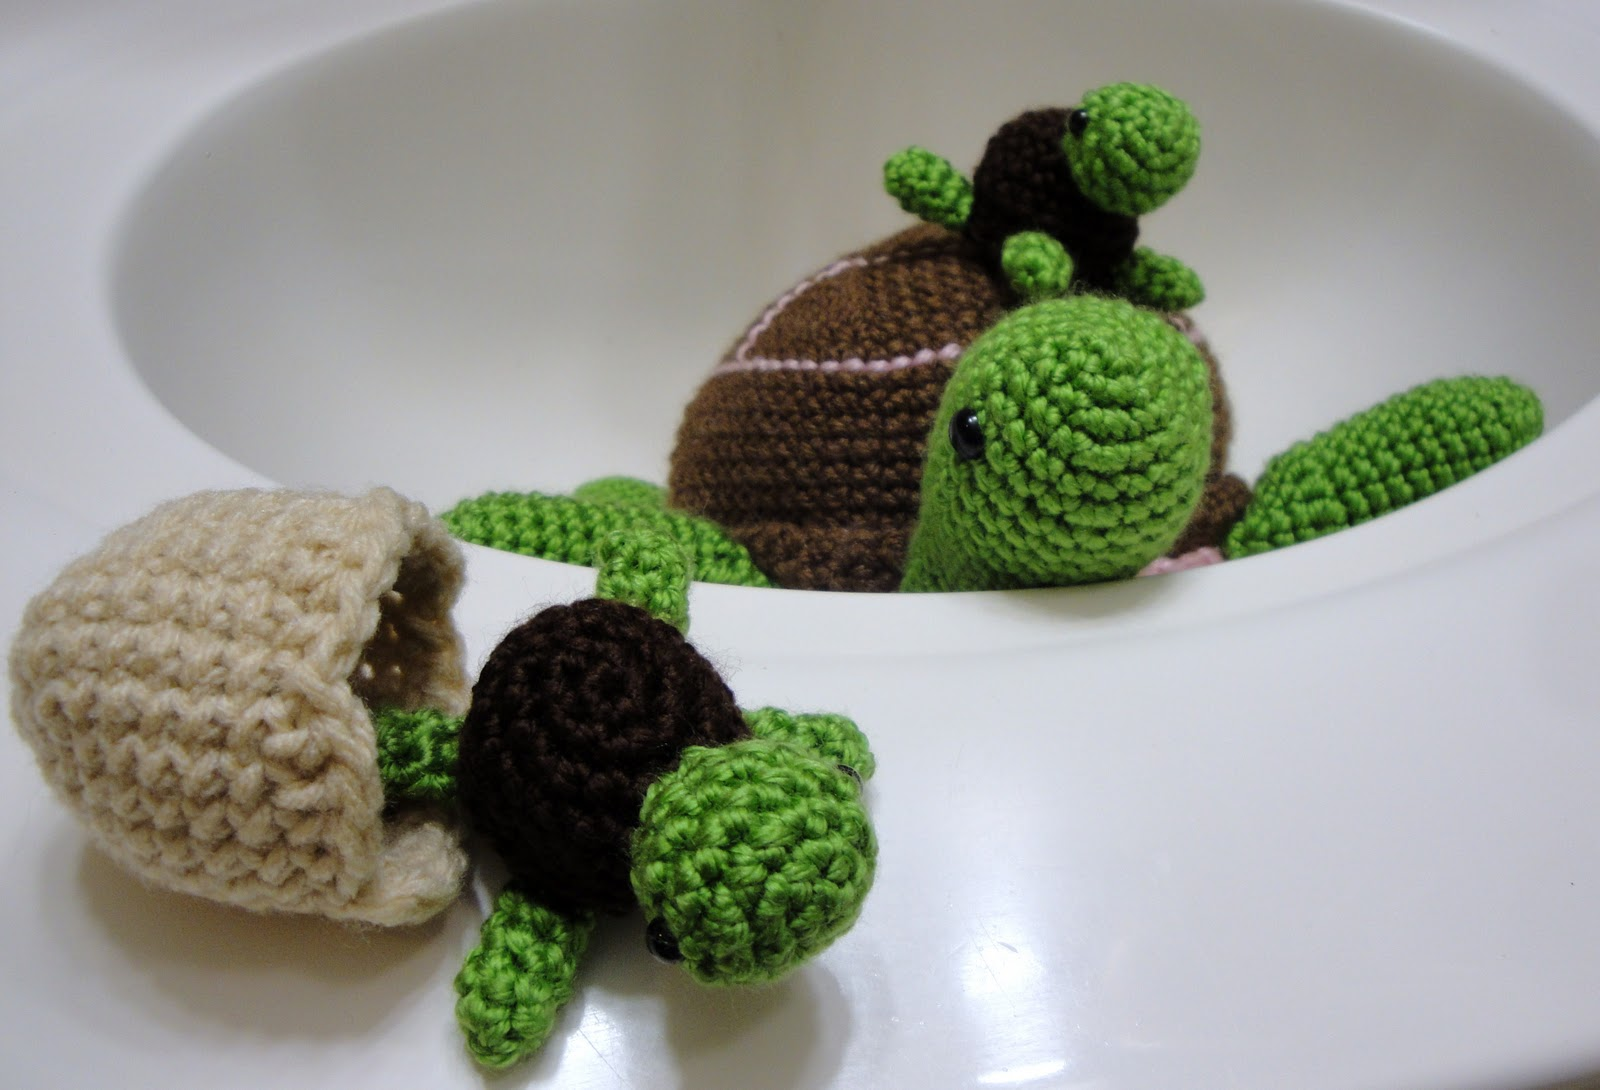 Crochet Patterns Turtle : crochet_turtle_egg_baby_amigurumi+%284%29.jpg